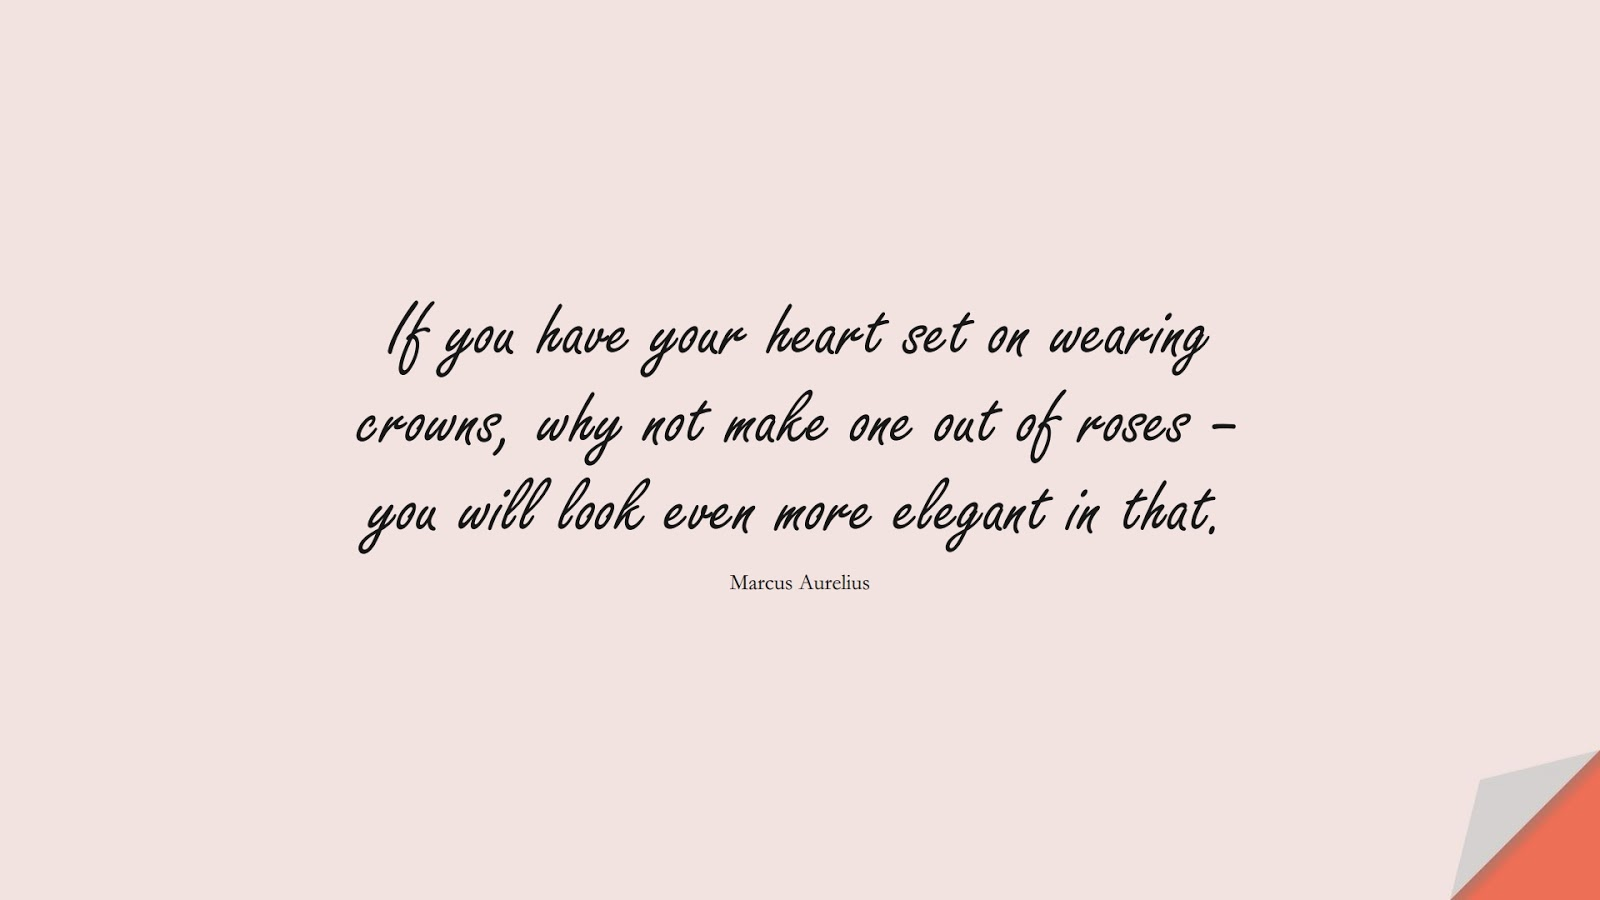 If you have your heart set on wearing crowns, why not make one out of roses – you will look even more elegant in that. (Marcus Aurelius);  #StoicQuotes